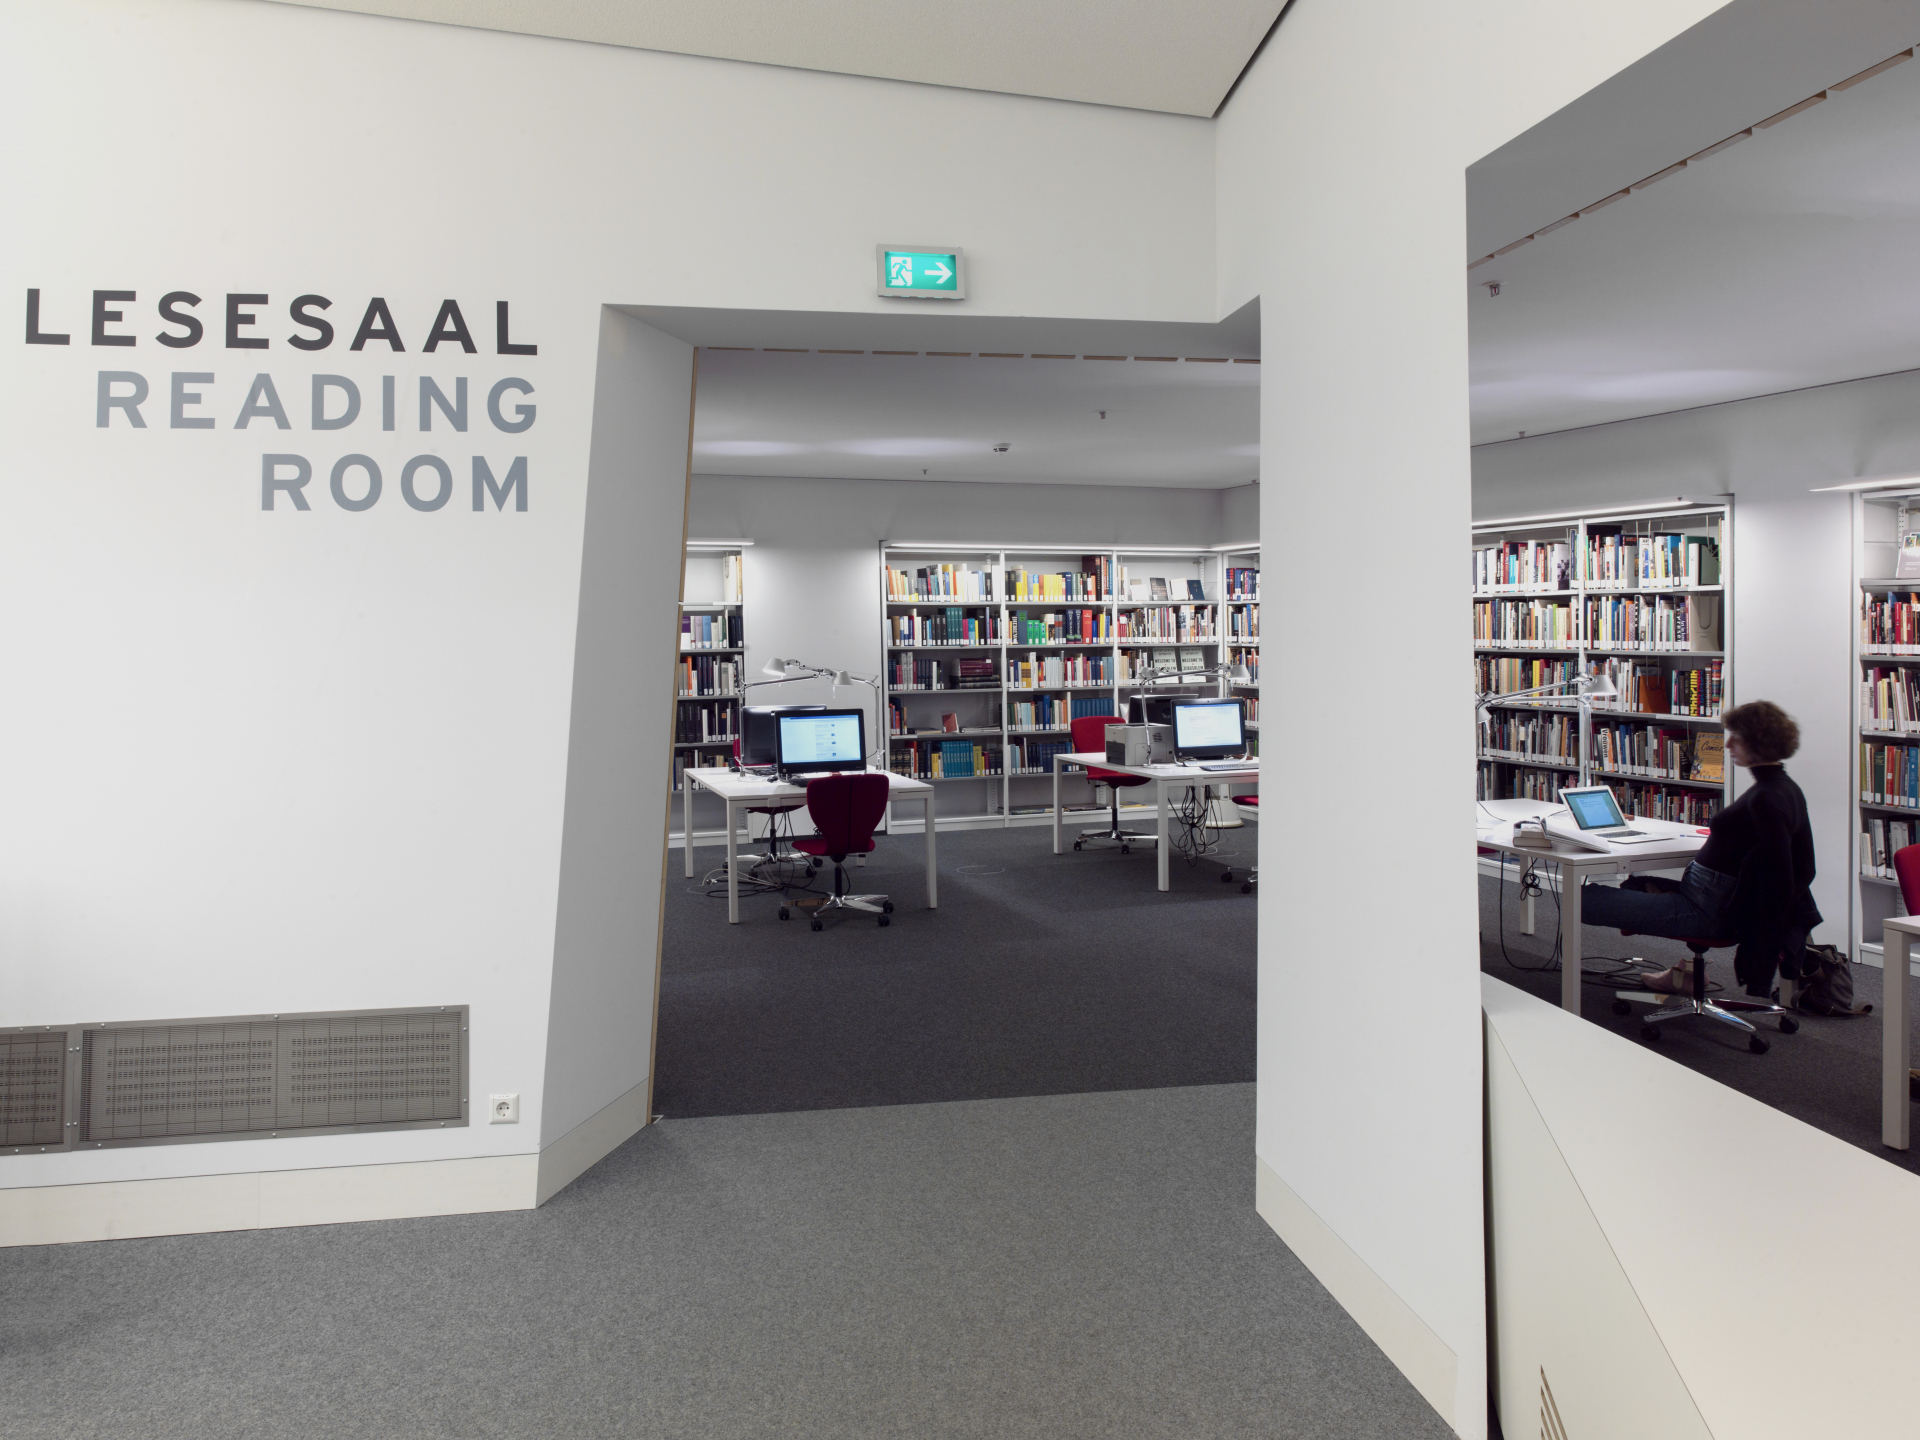 Passage from the reading room to the work area, a woman sits at one of the computers on the tables